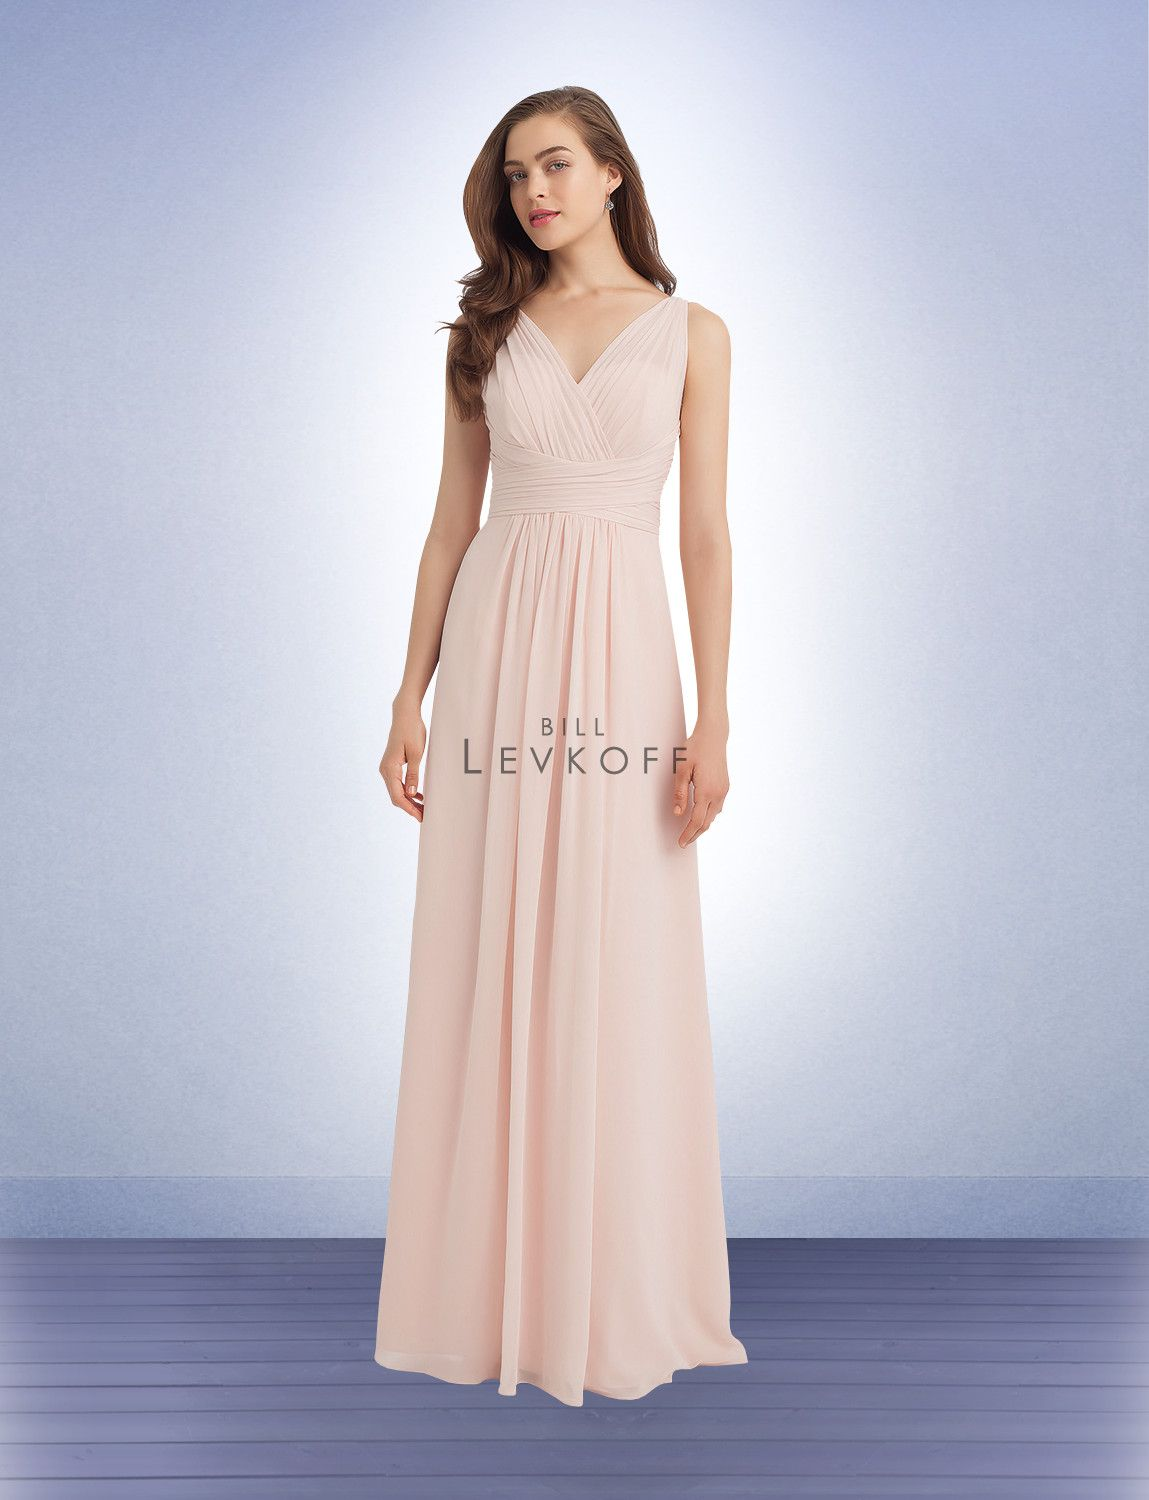 Bridesmaid dress style 1115 bridesmaid dresses by bill levkoff bridesmaid dress style 1115 bridesmaid dresses by bill levkoff store sample in petal pink ombrellifo Gallery